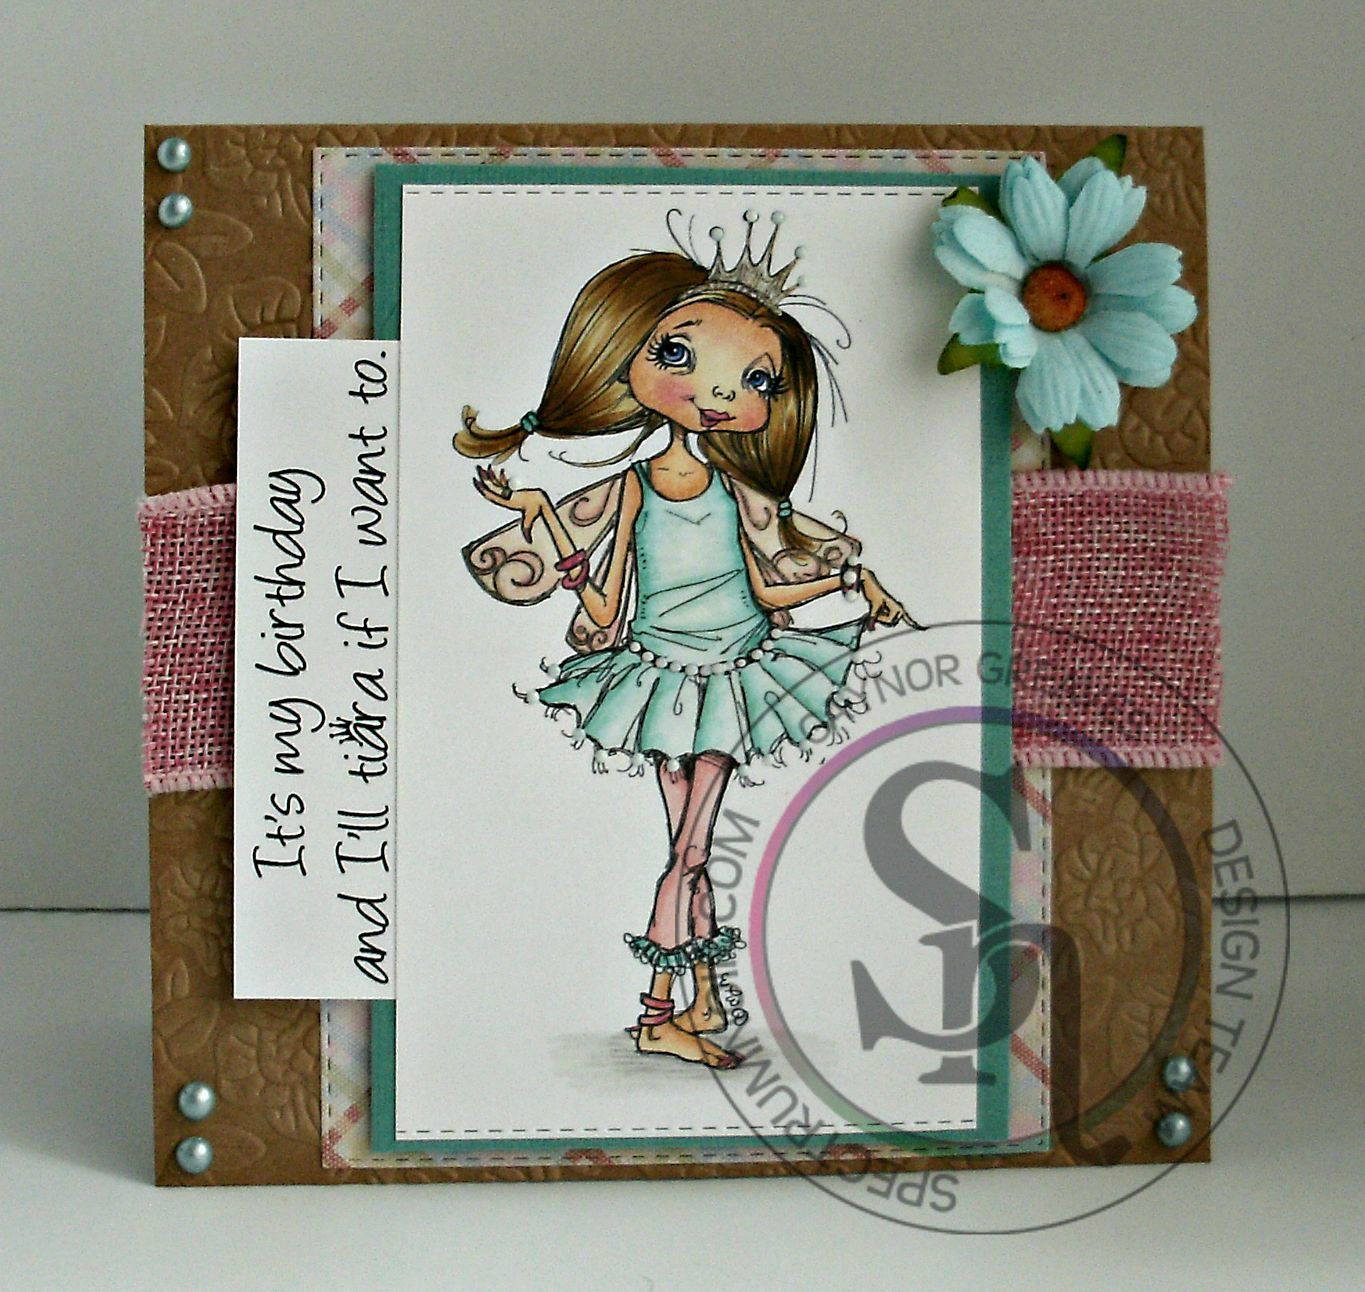 Fs1 On Spectrum >> Designed by Gaynor Greaves - Tiara digi stamp from Mo Manning. Spectrum Noir pens and pencils ...